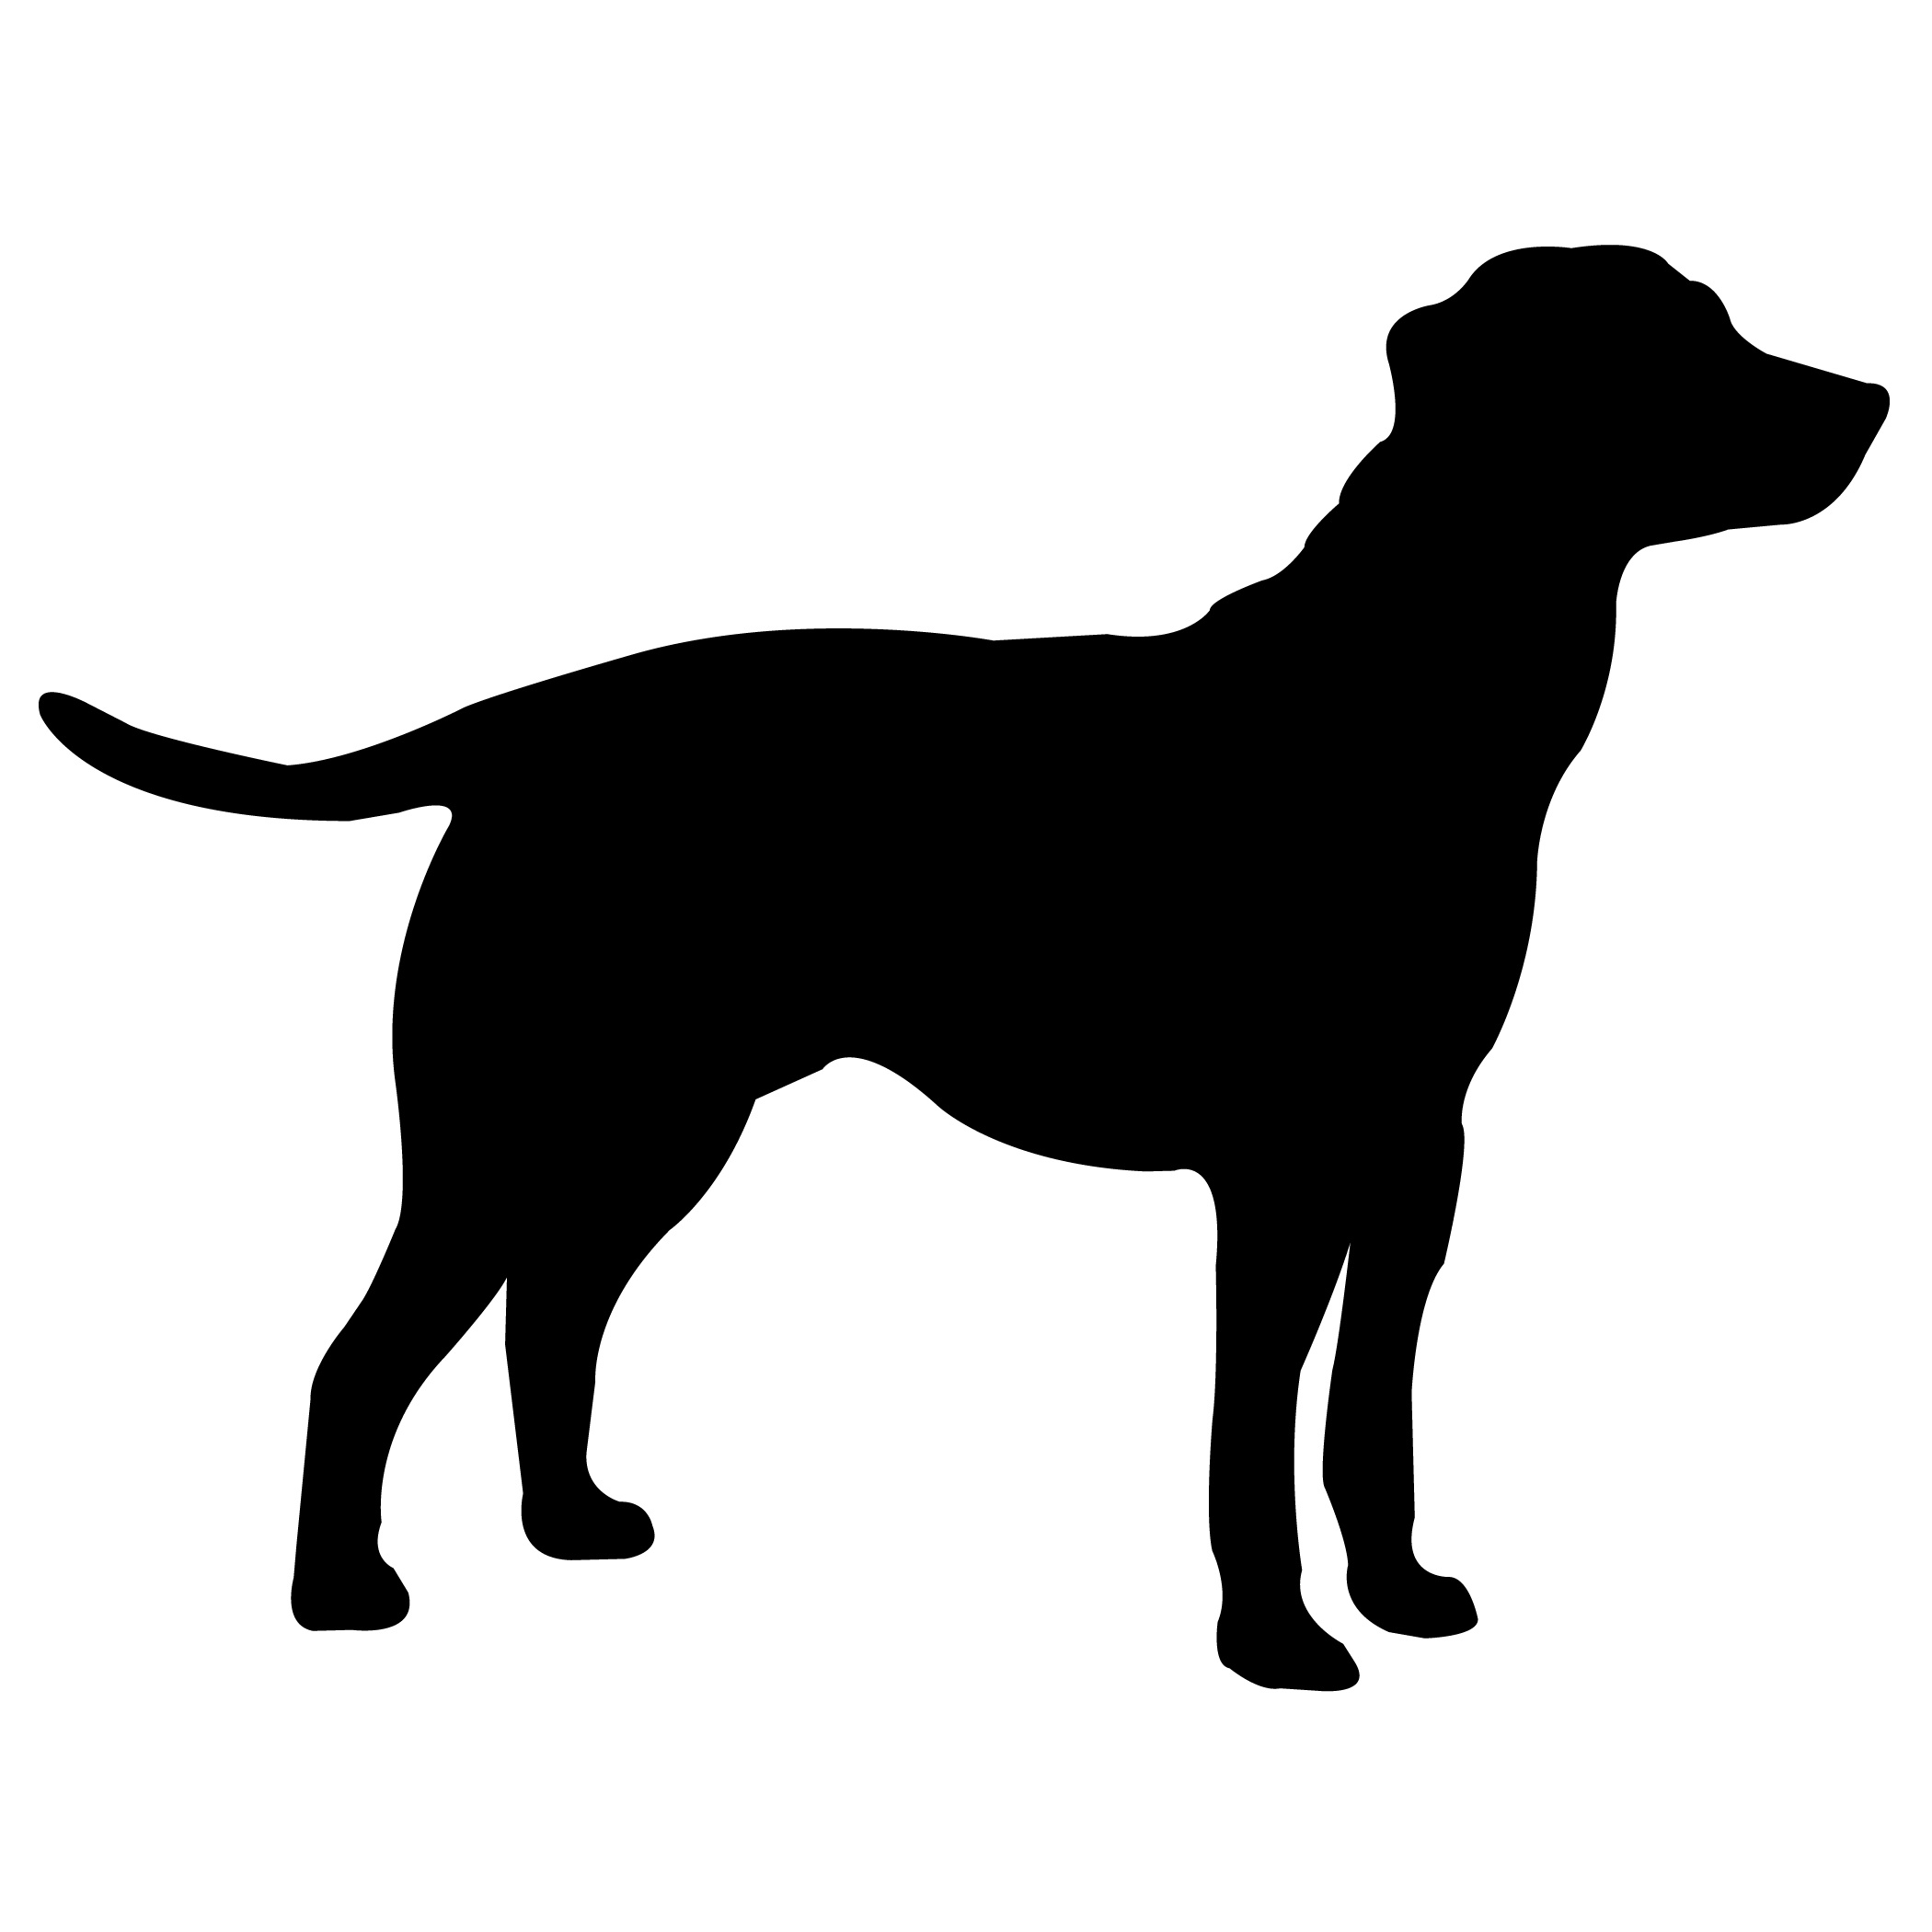 Halloween Dog Silhouette | Download Free Silhouettes - Free Printable Dog Silhouettes